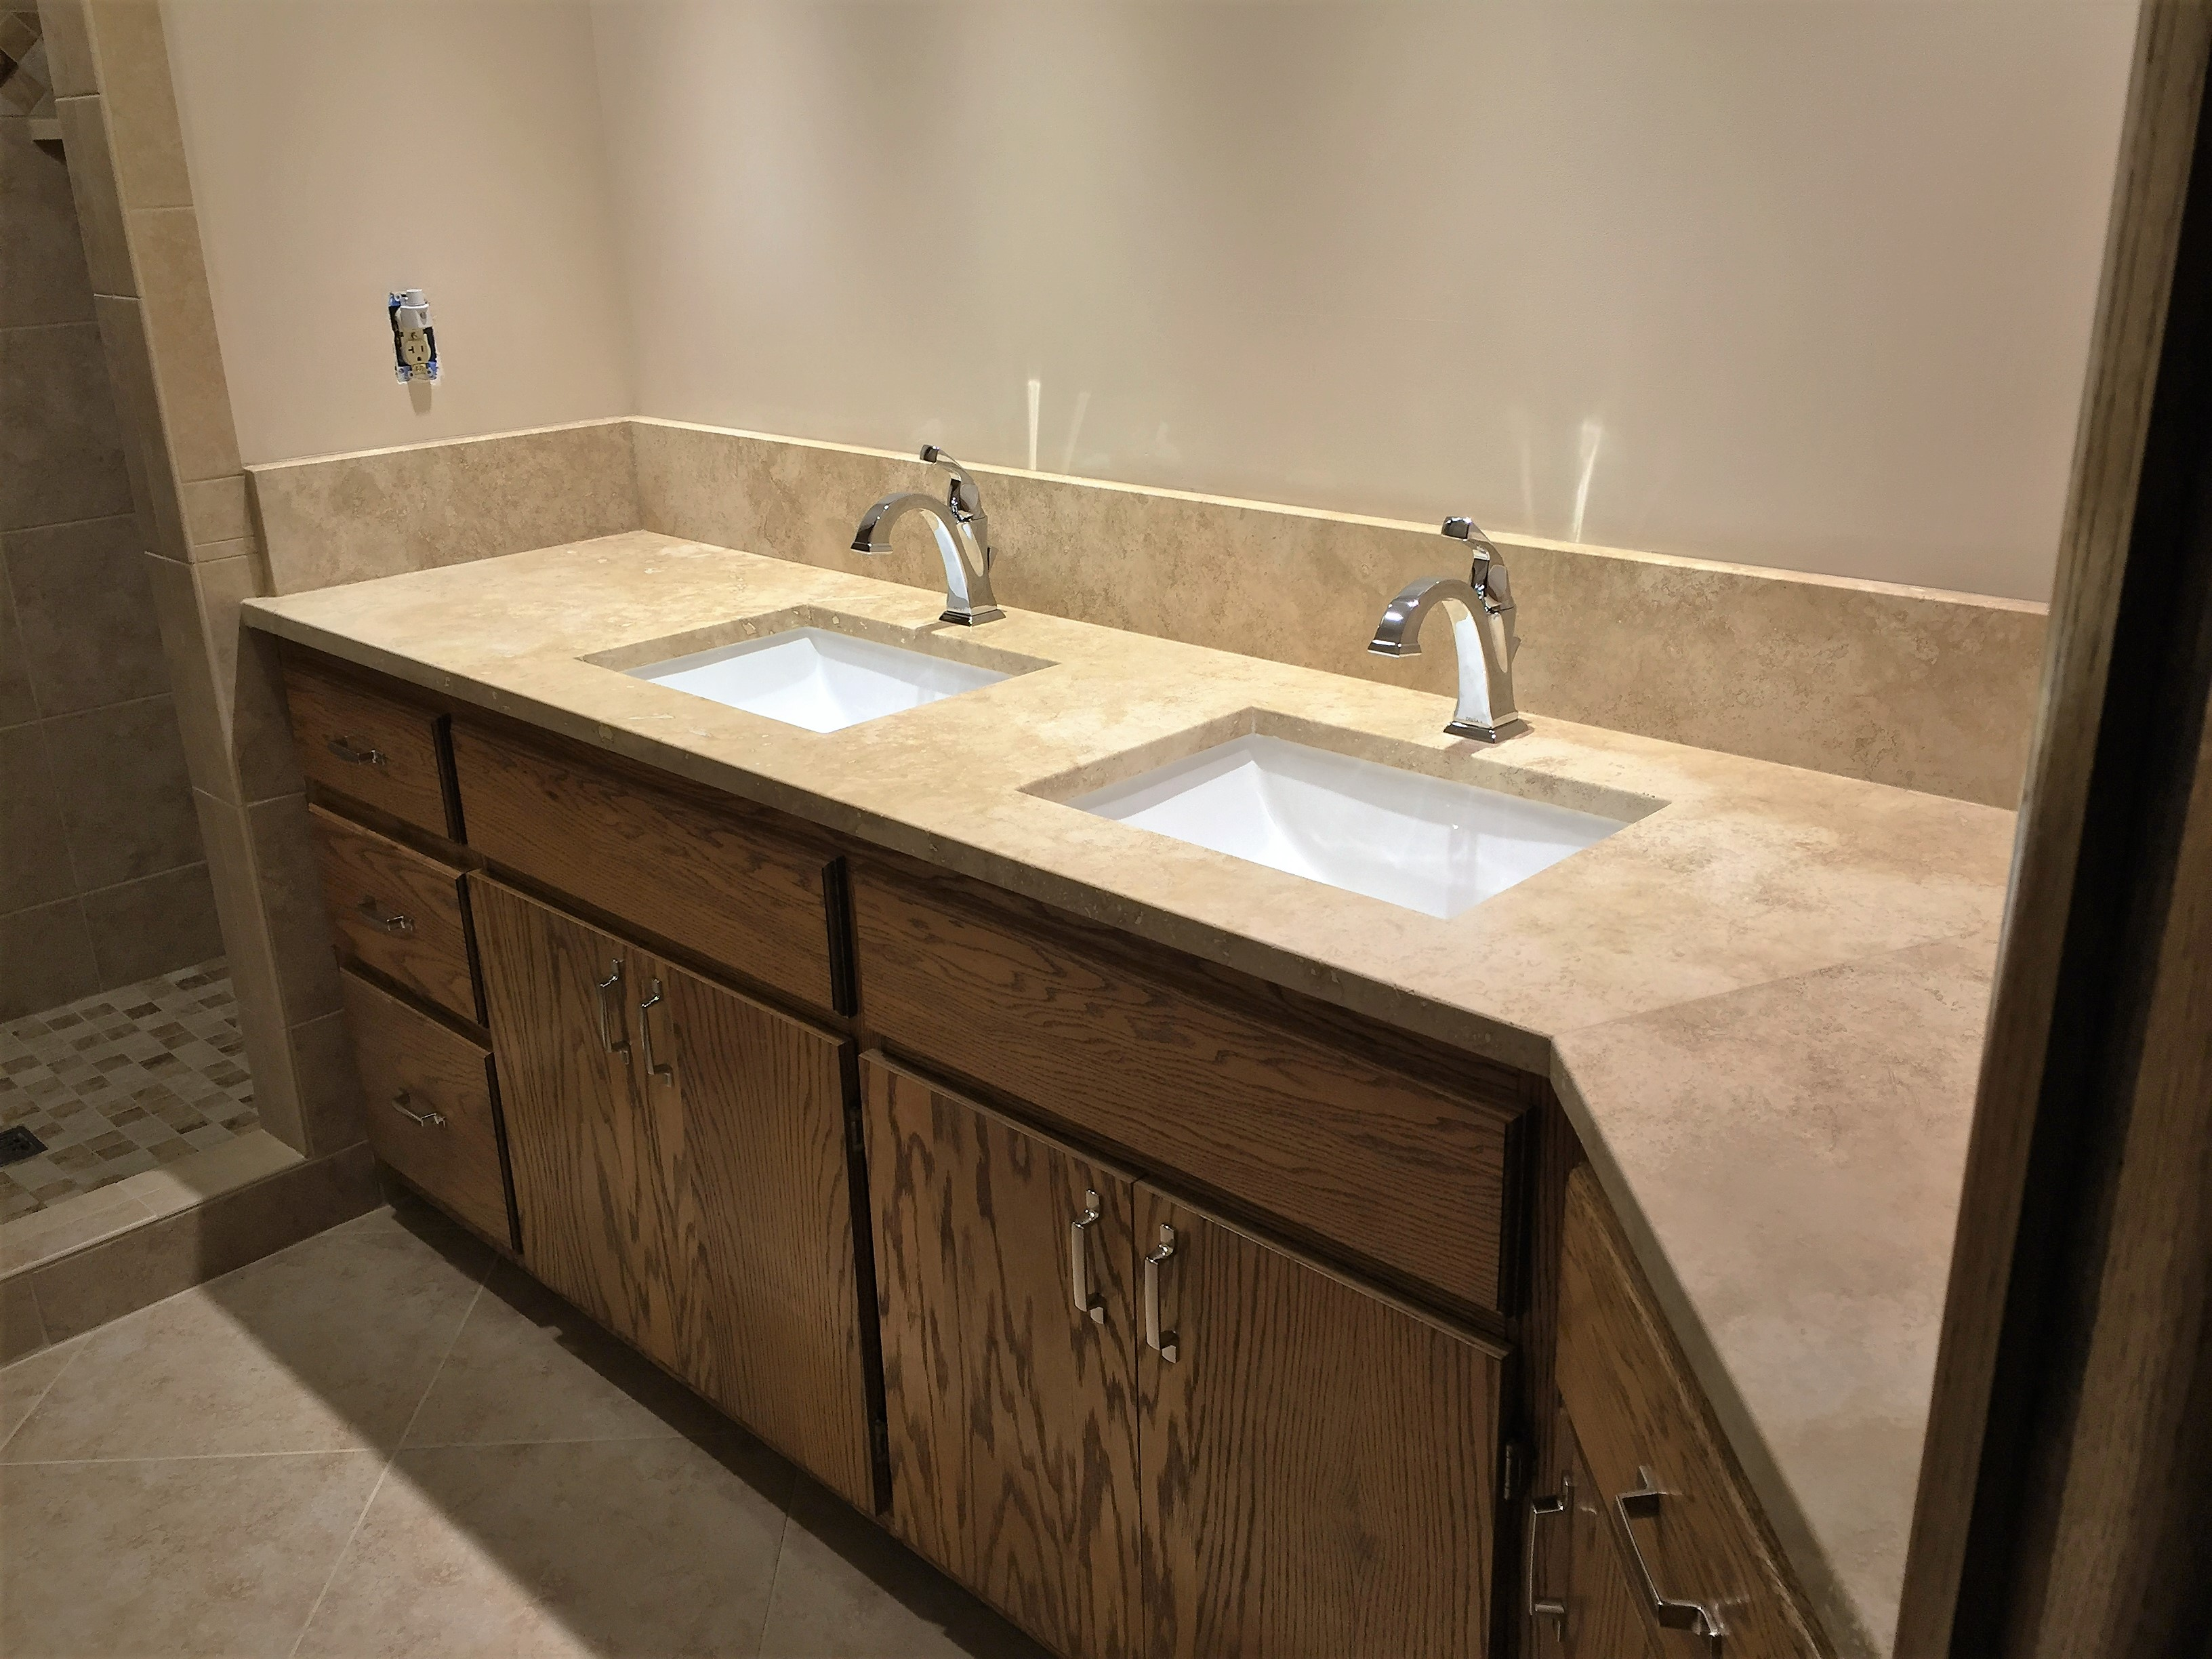 New tan quartz countertop and double sink with chrome fixtures after bathroom remodel